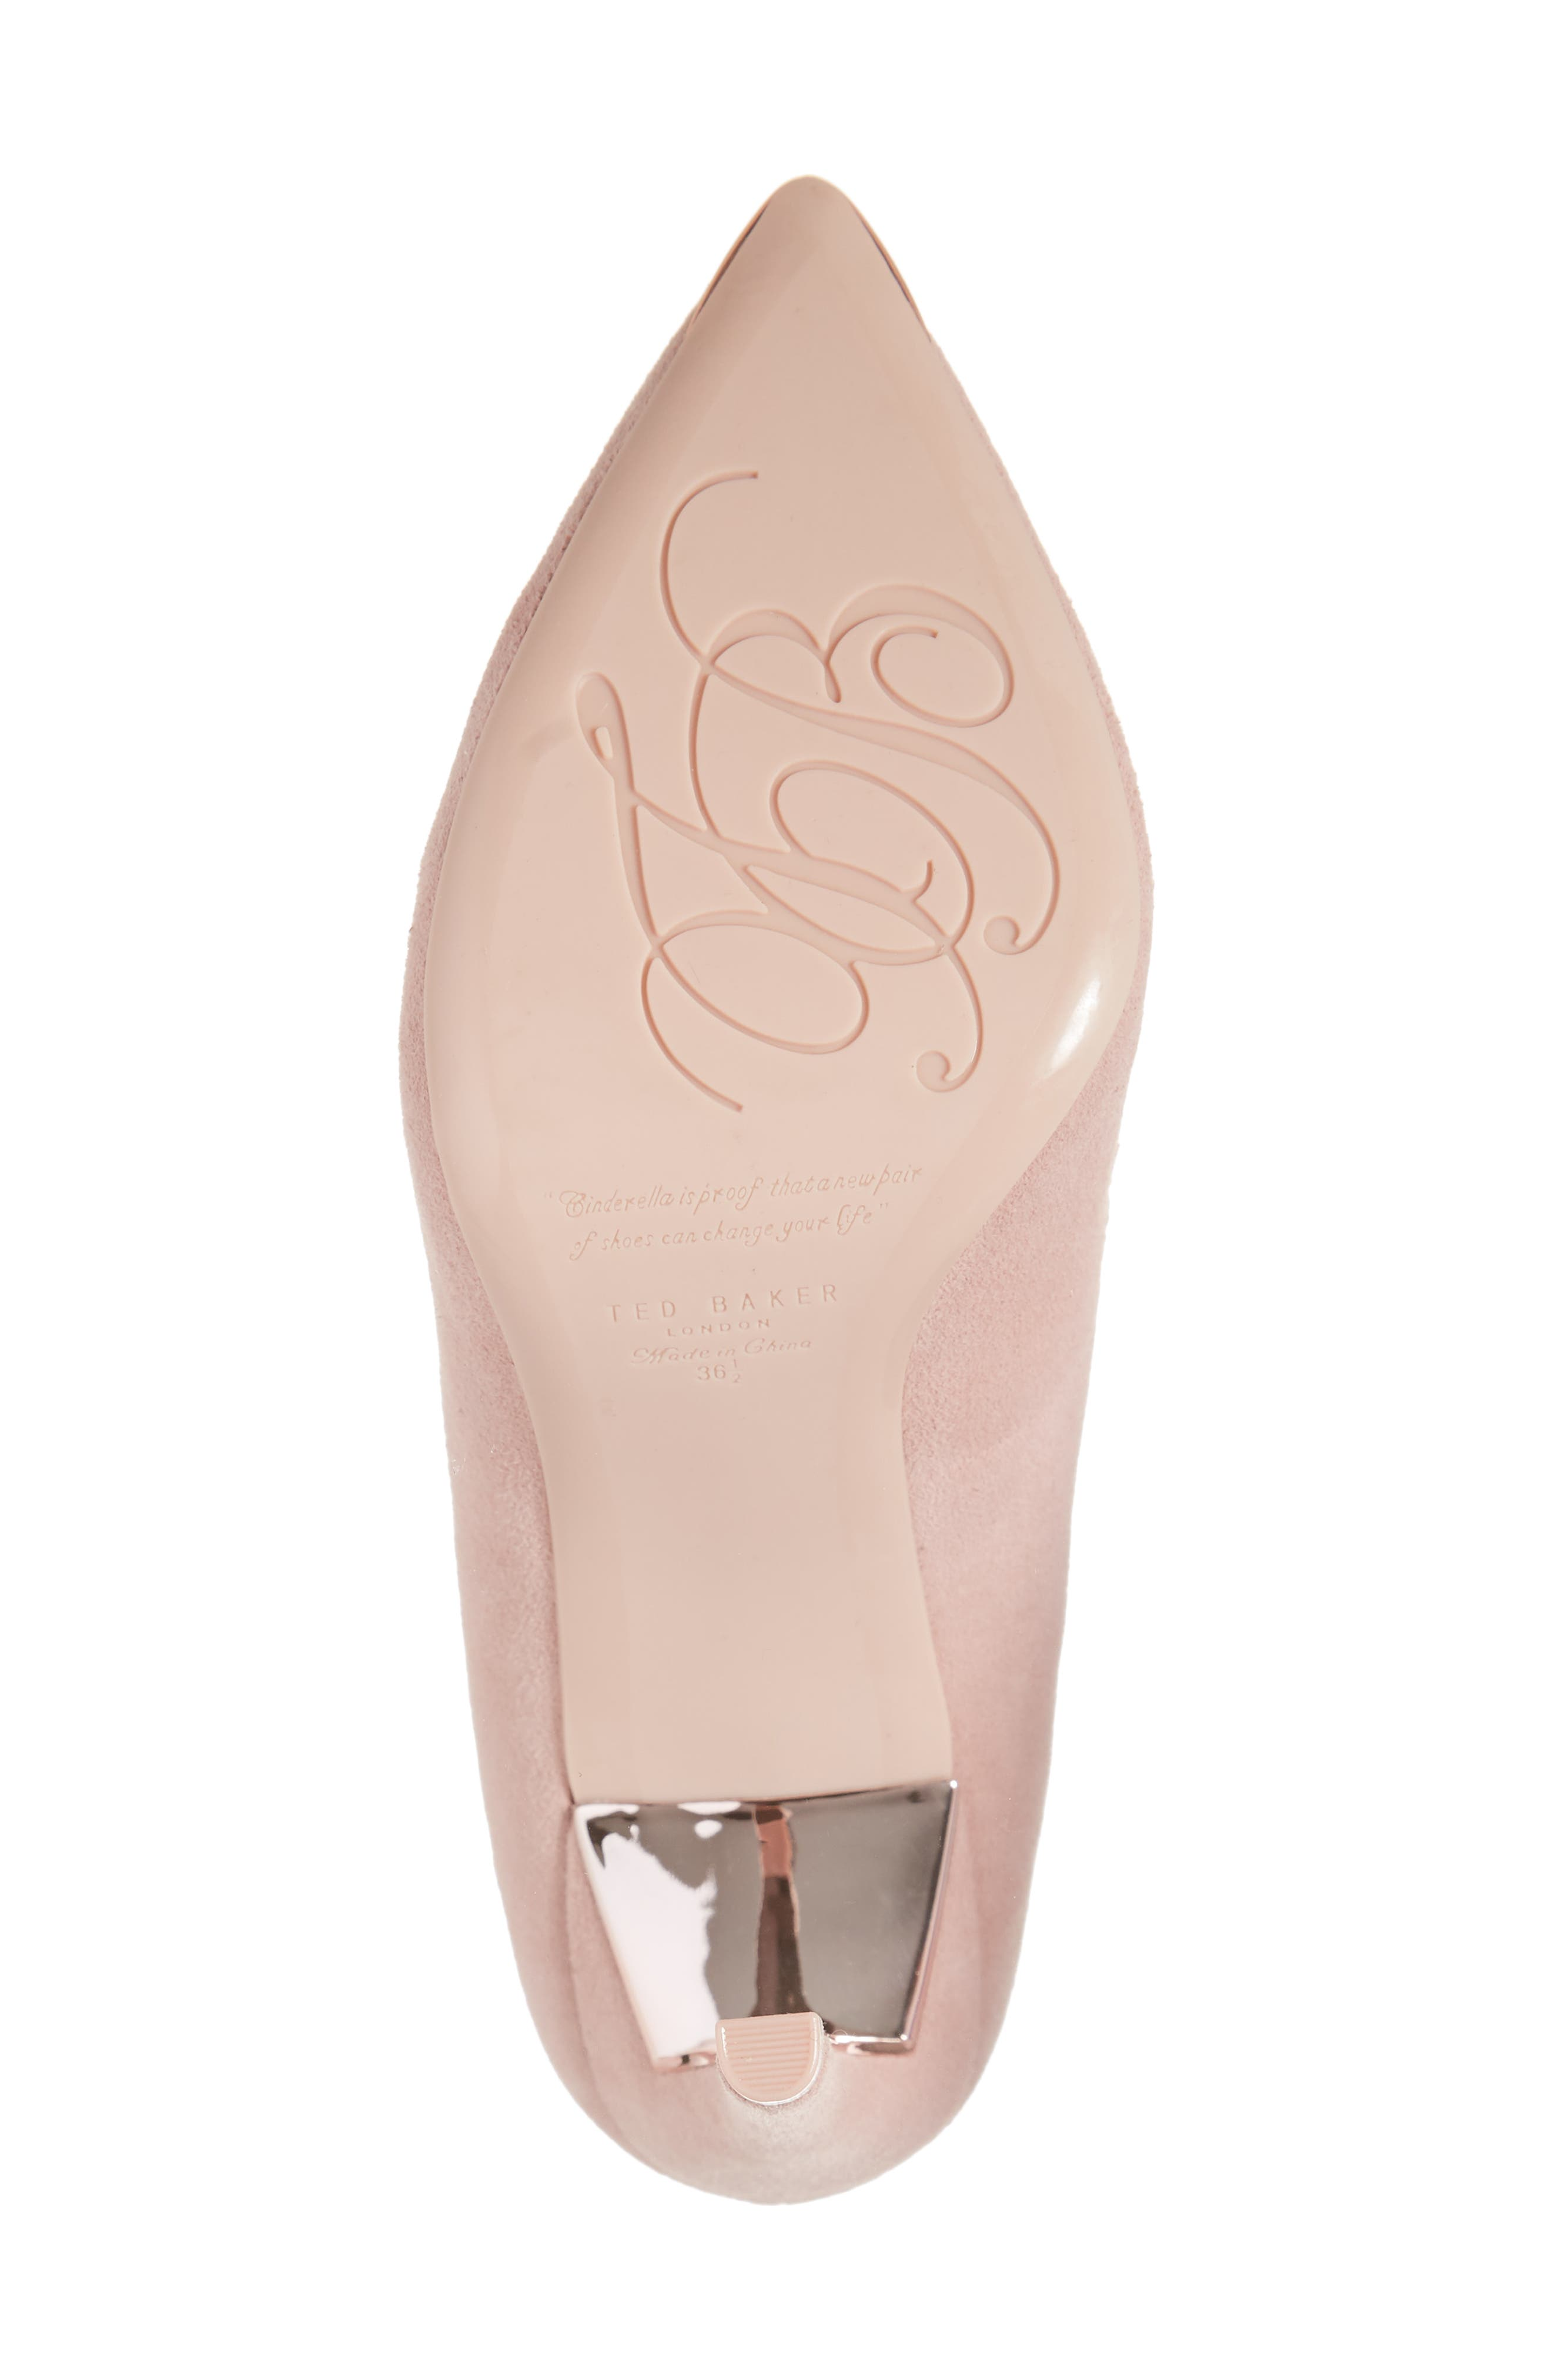 Sloana Pointy Toe Pump,                             Alternate thumbnail 6, color,                             PINK BLOSSOM SUEDE